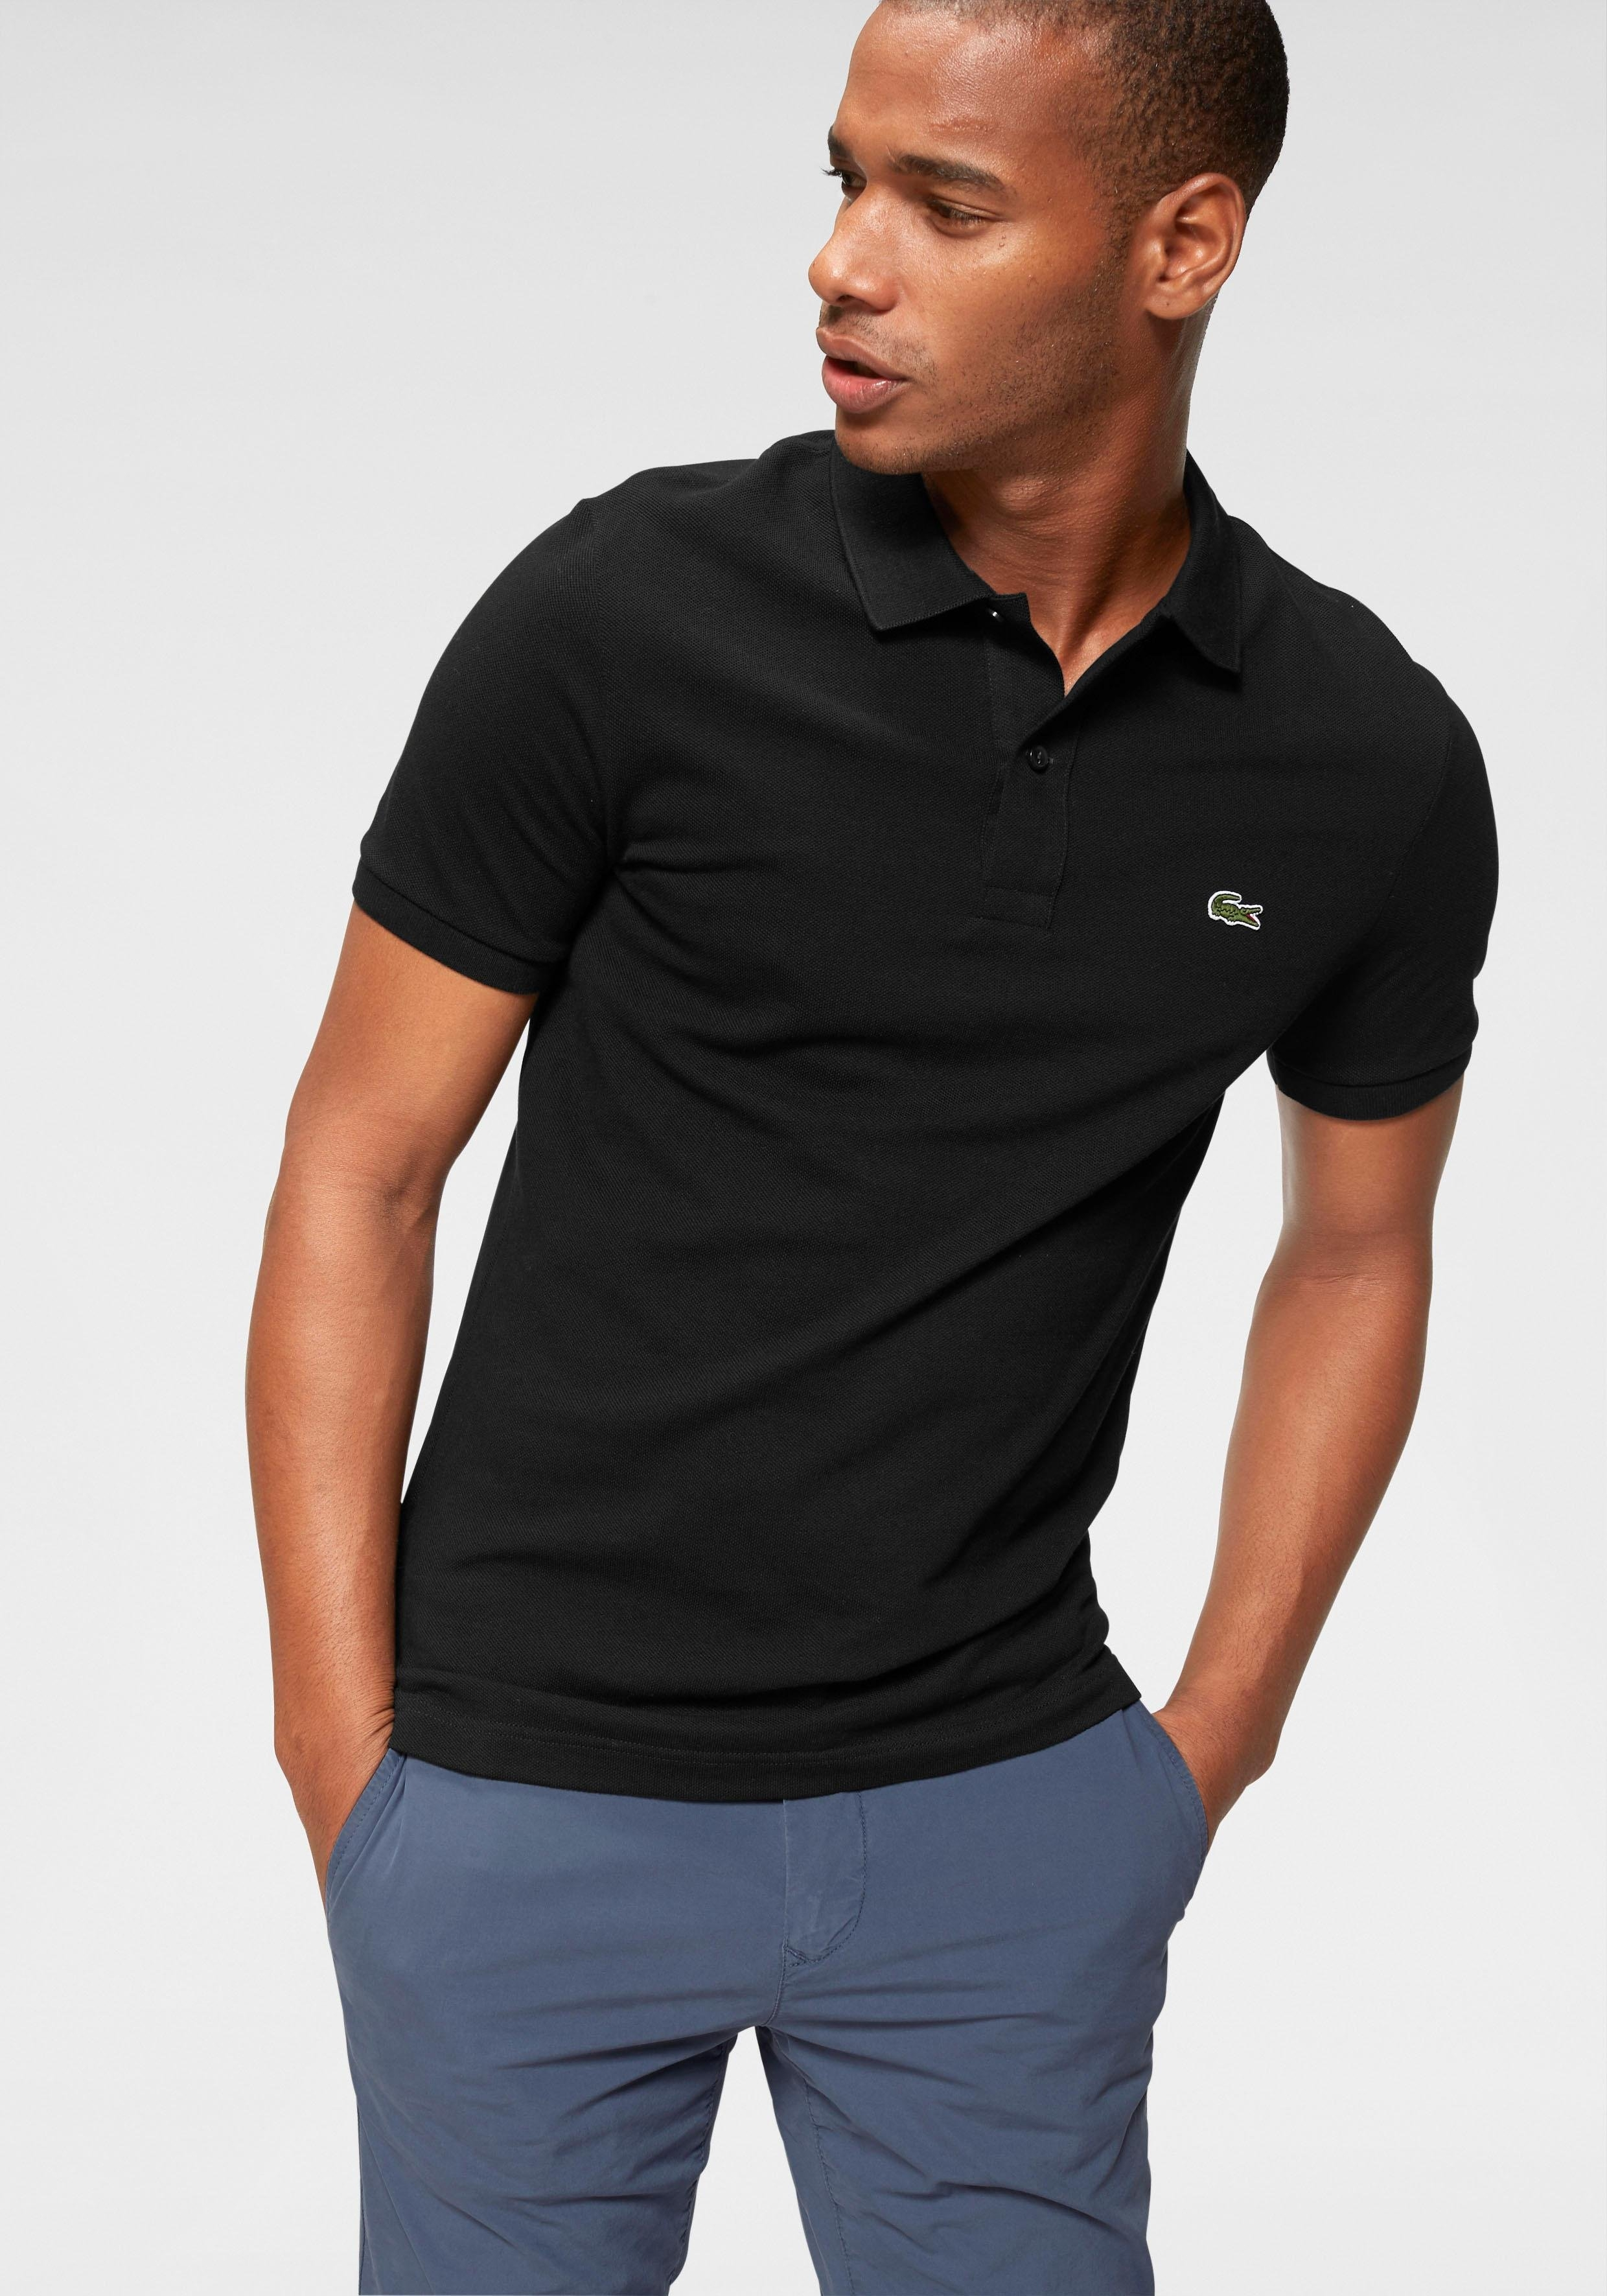 Poloshirtph4012 Lacoste Gevonden Snel Poloshirtph4012 Lacoste Snel H2IED9